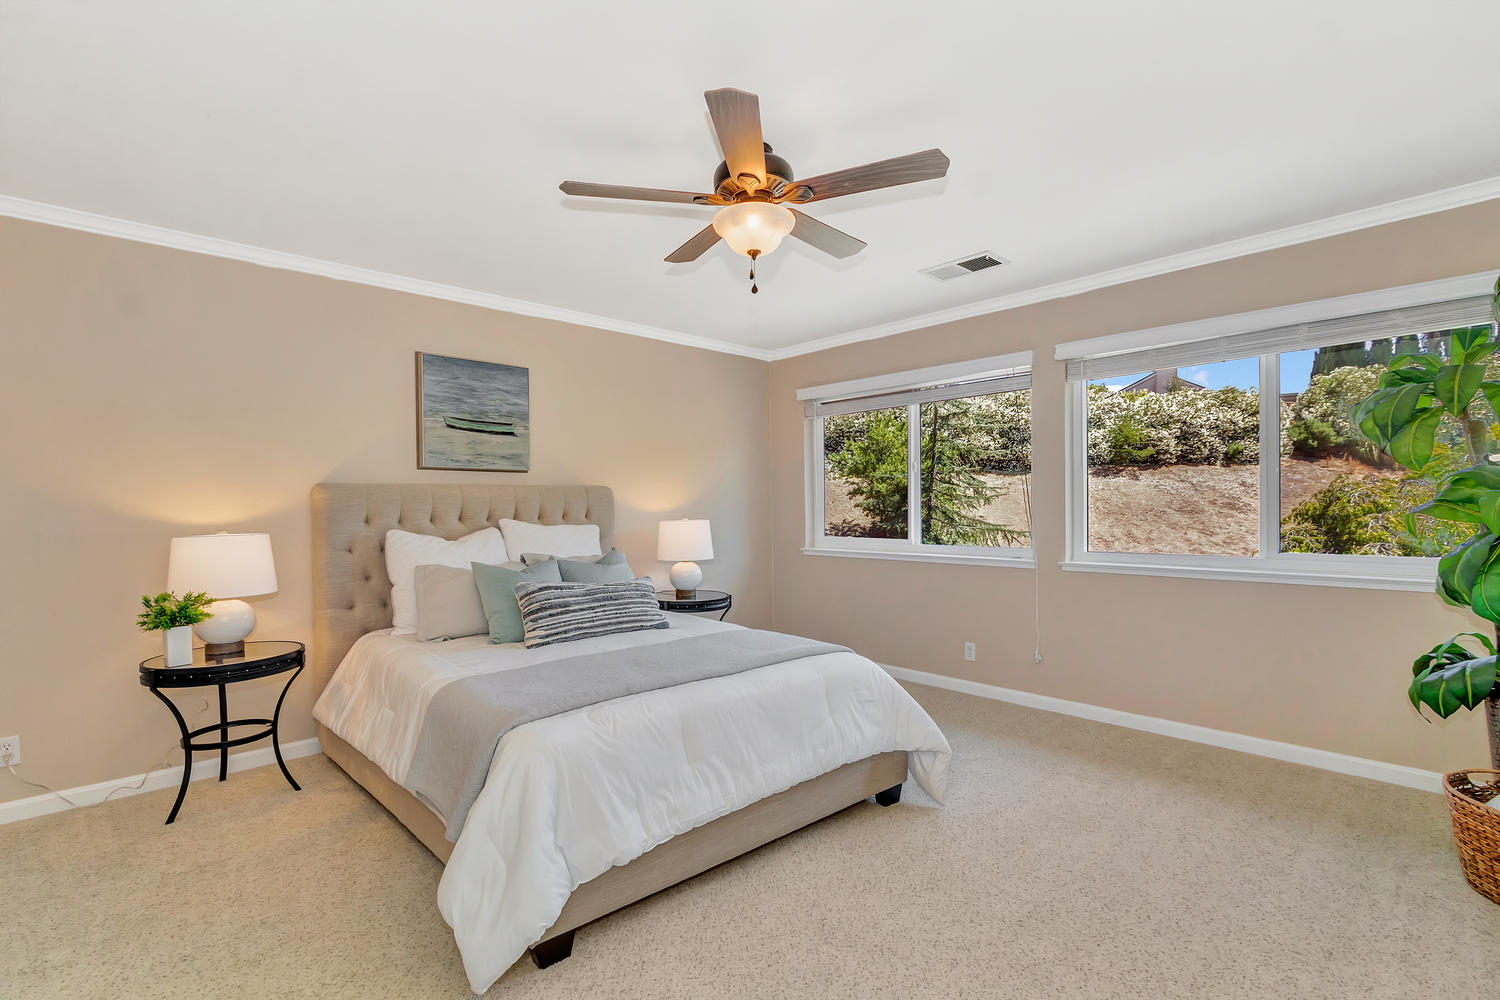 The large master suite has sweeping views and offers matching hidden walk-in closets.